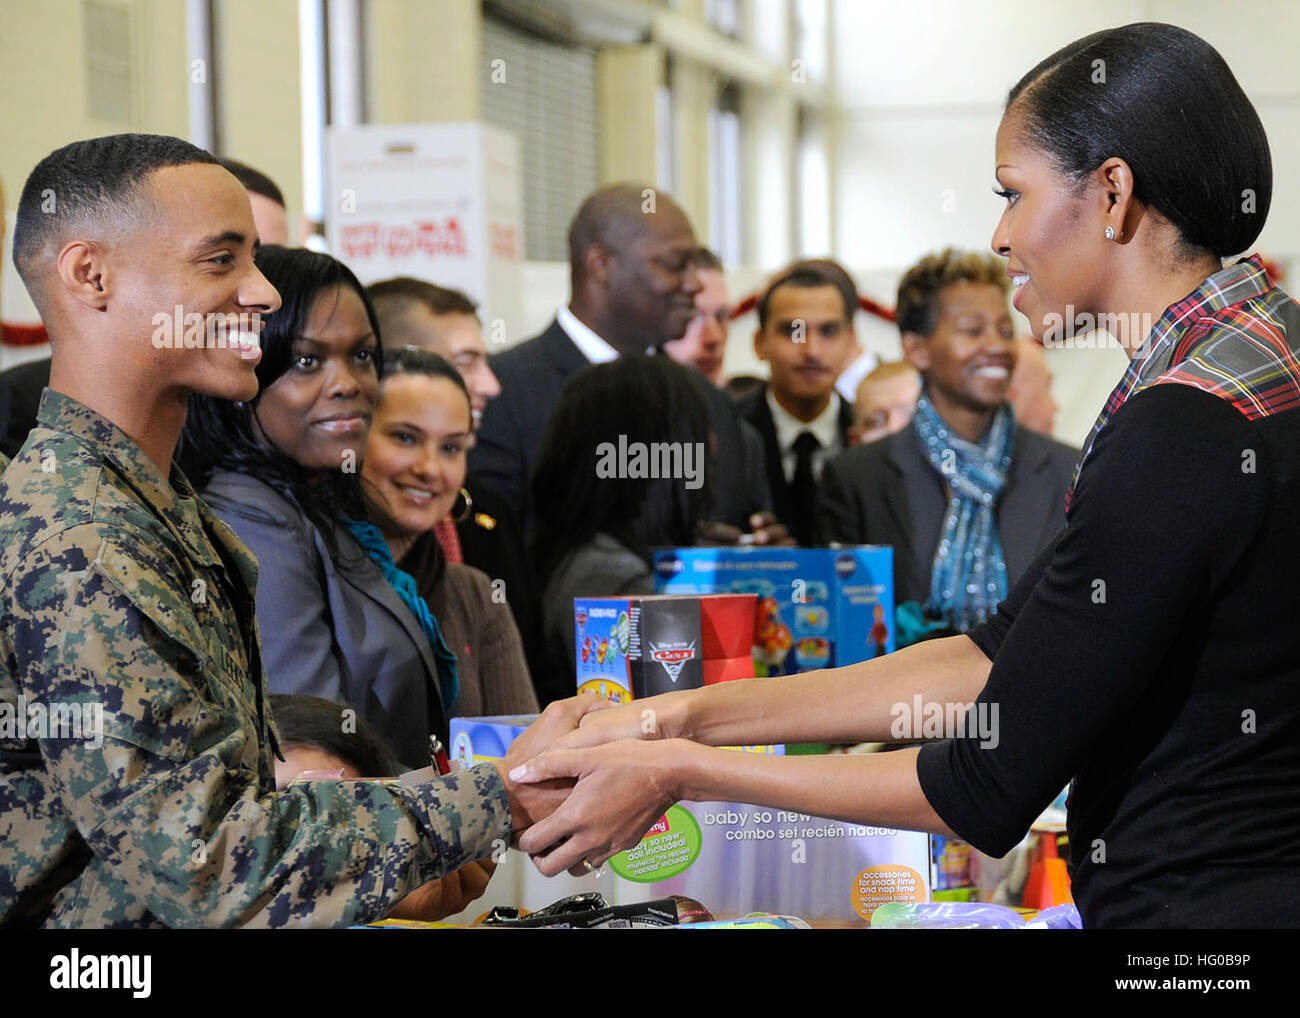 111216-F-ZE674-348 WASHINGTON (Dec. 16, 2011) First lady Michelle Obama shakes hands with Lance Cpl. Aaron Leeks Stock Photo